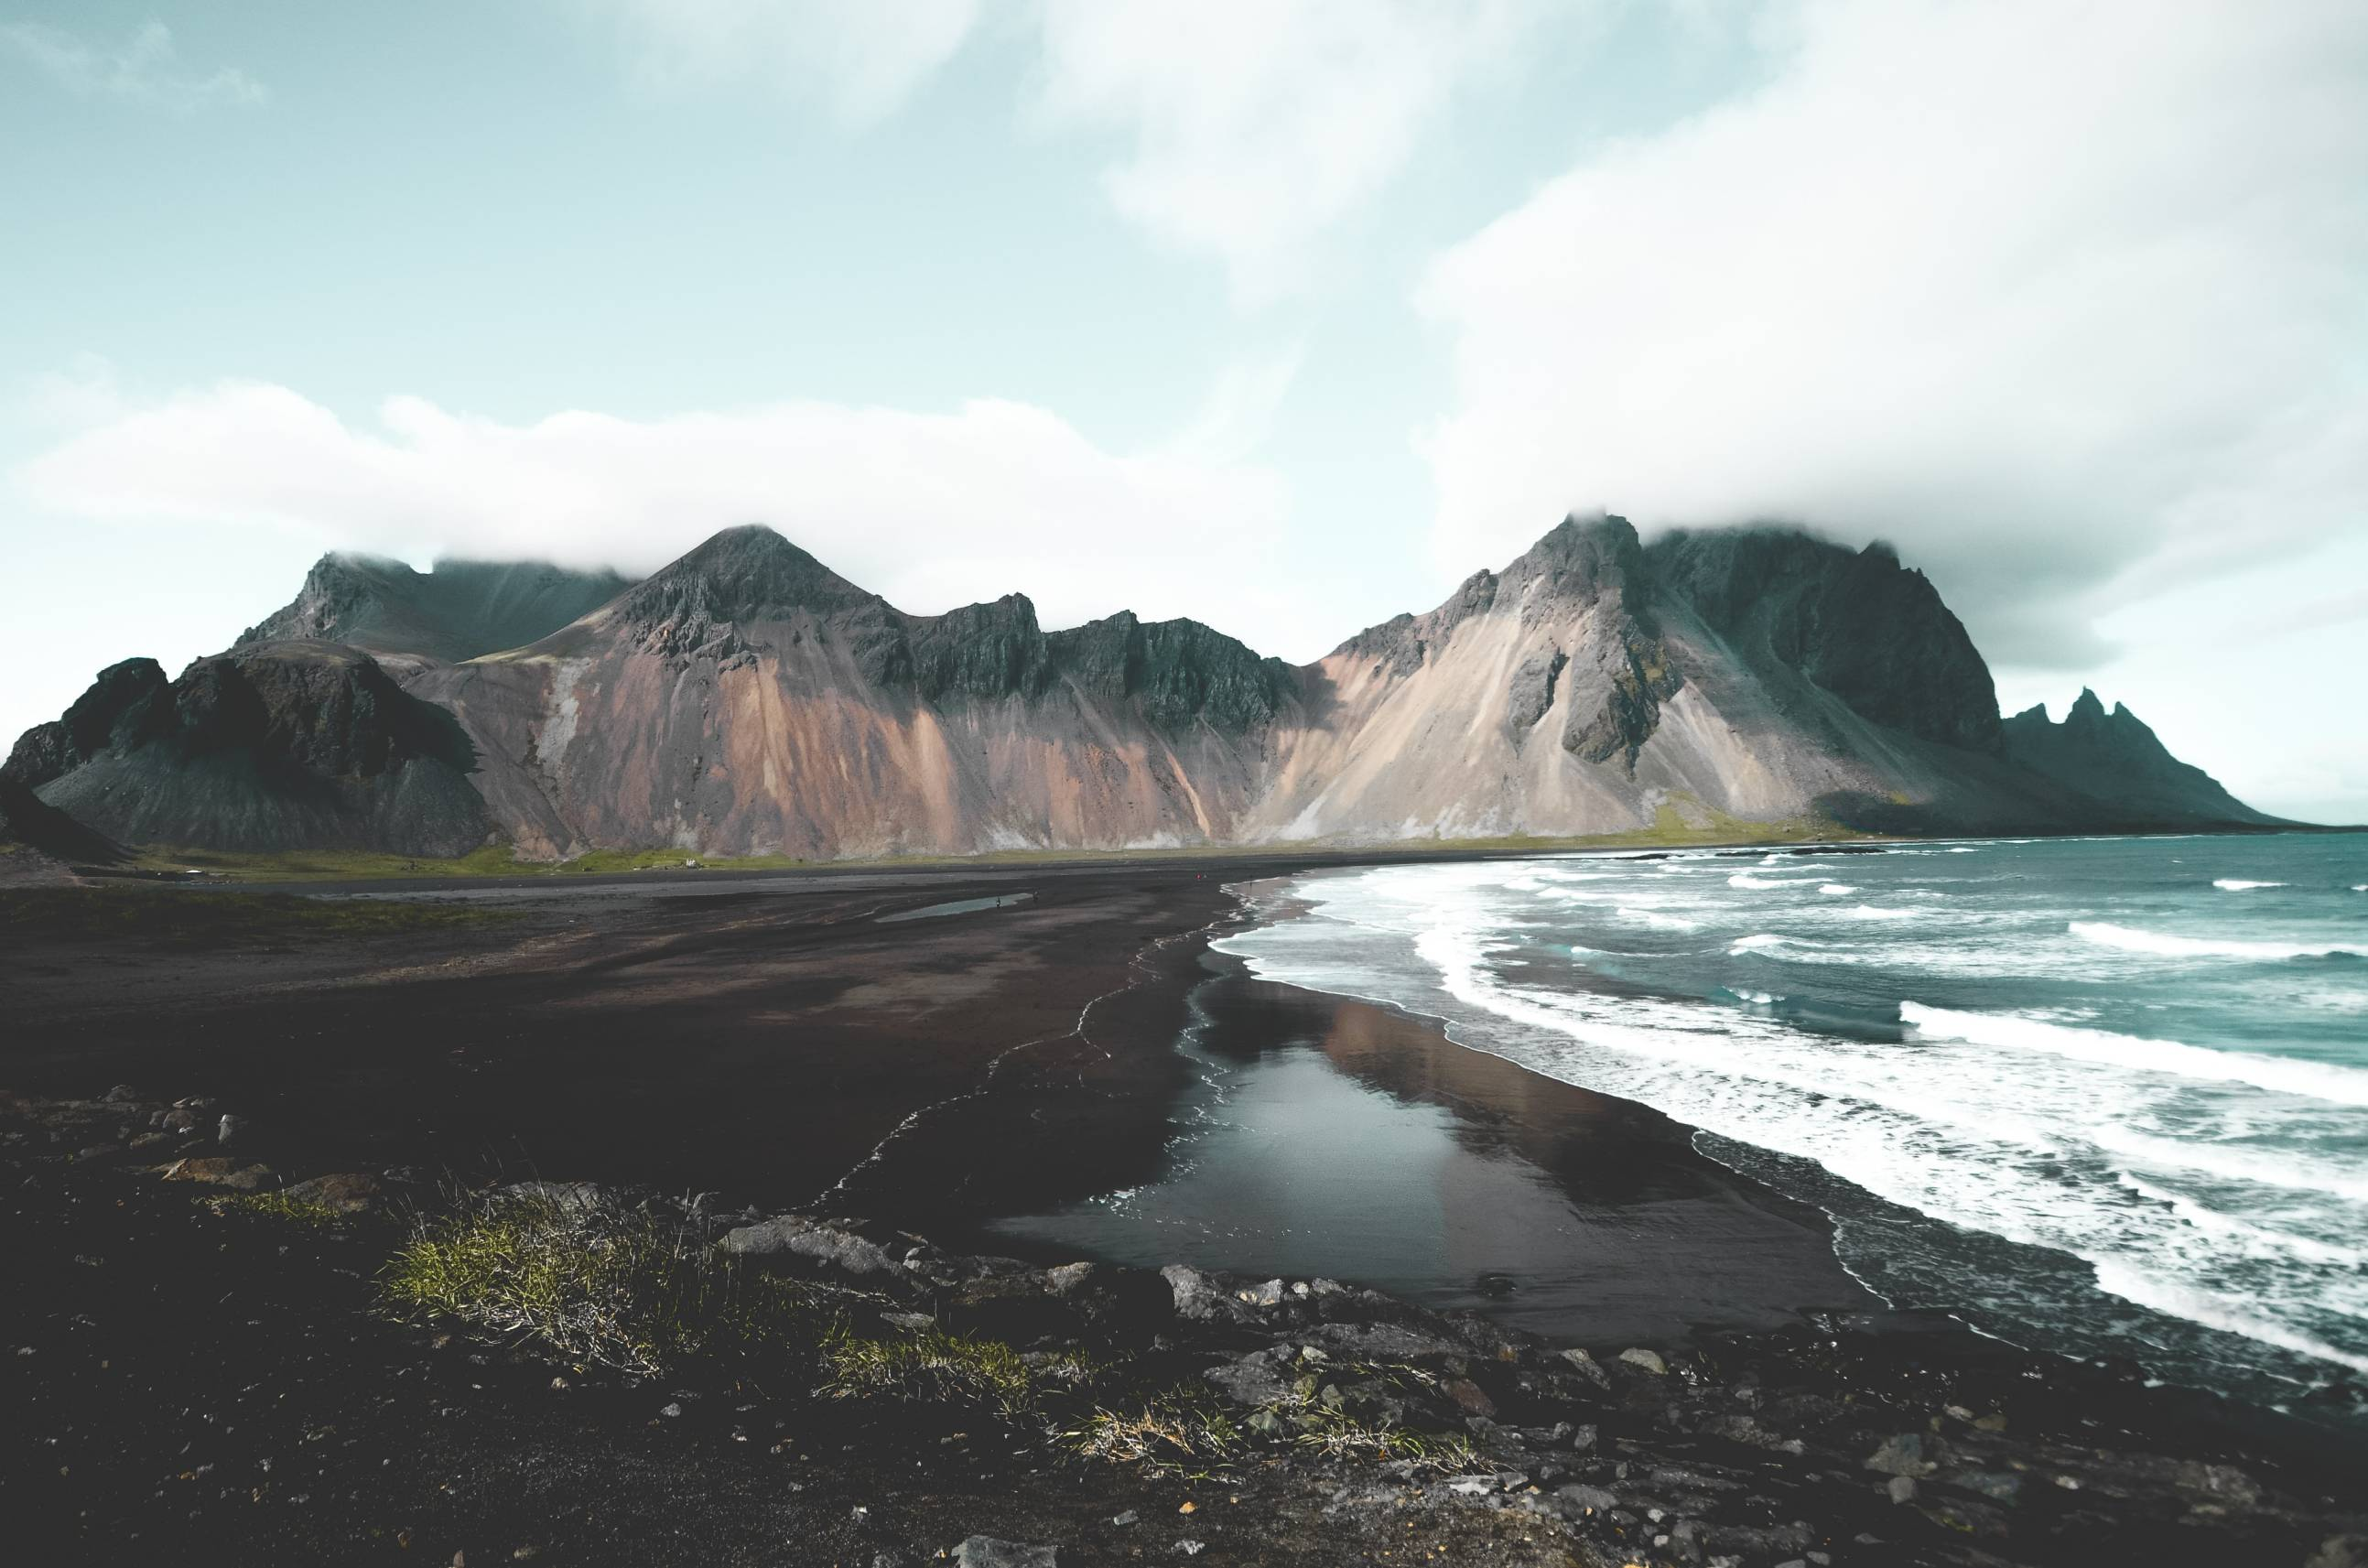 black-sand-beach-with-mount-vestrahorn-in-the-background-on-a-cloudy-day